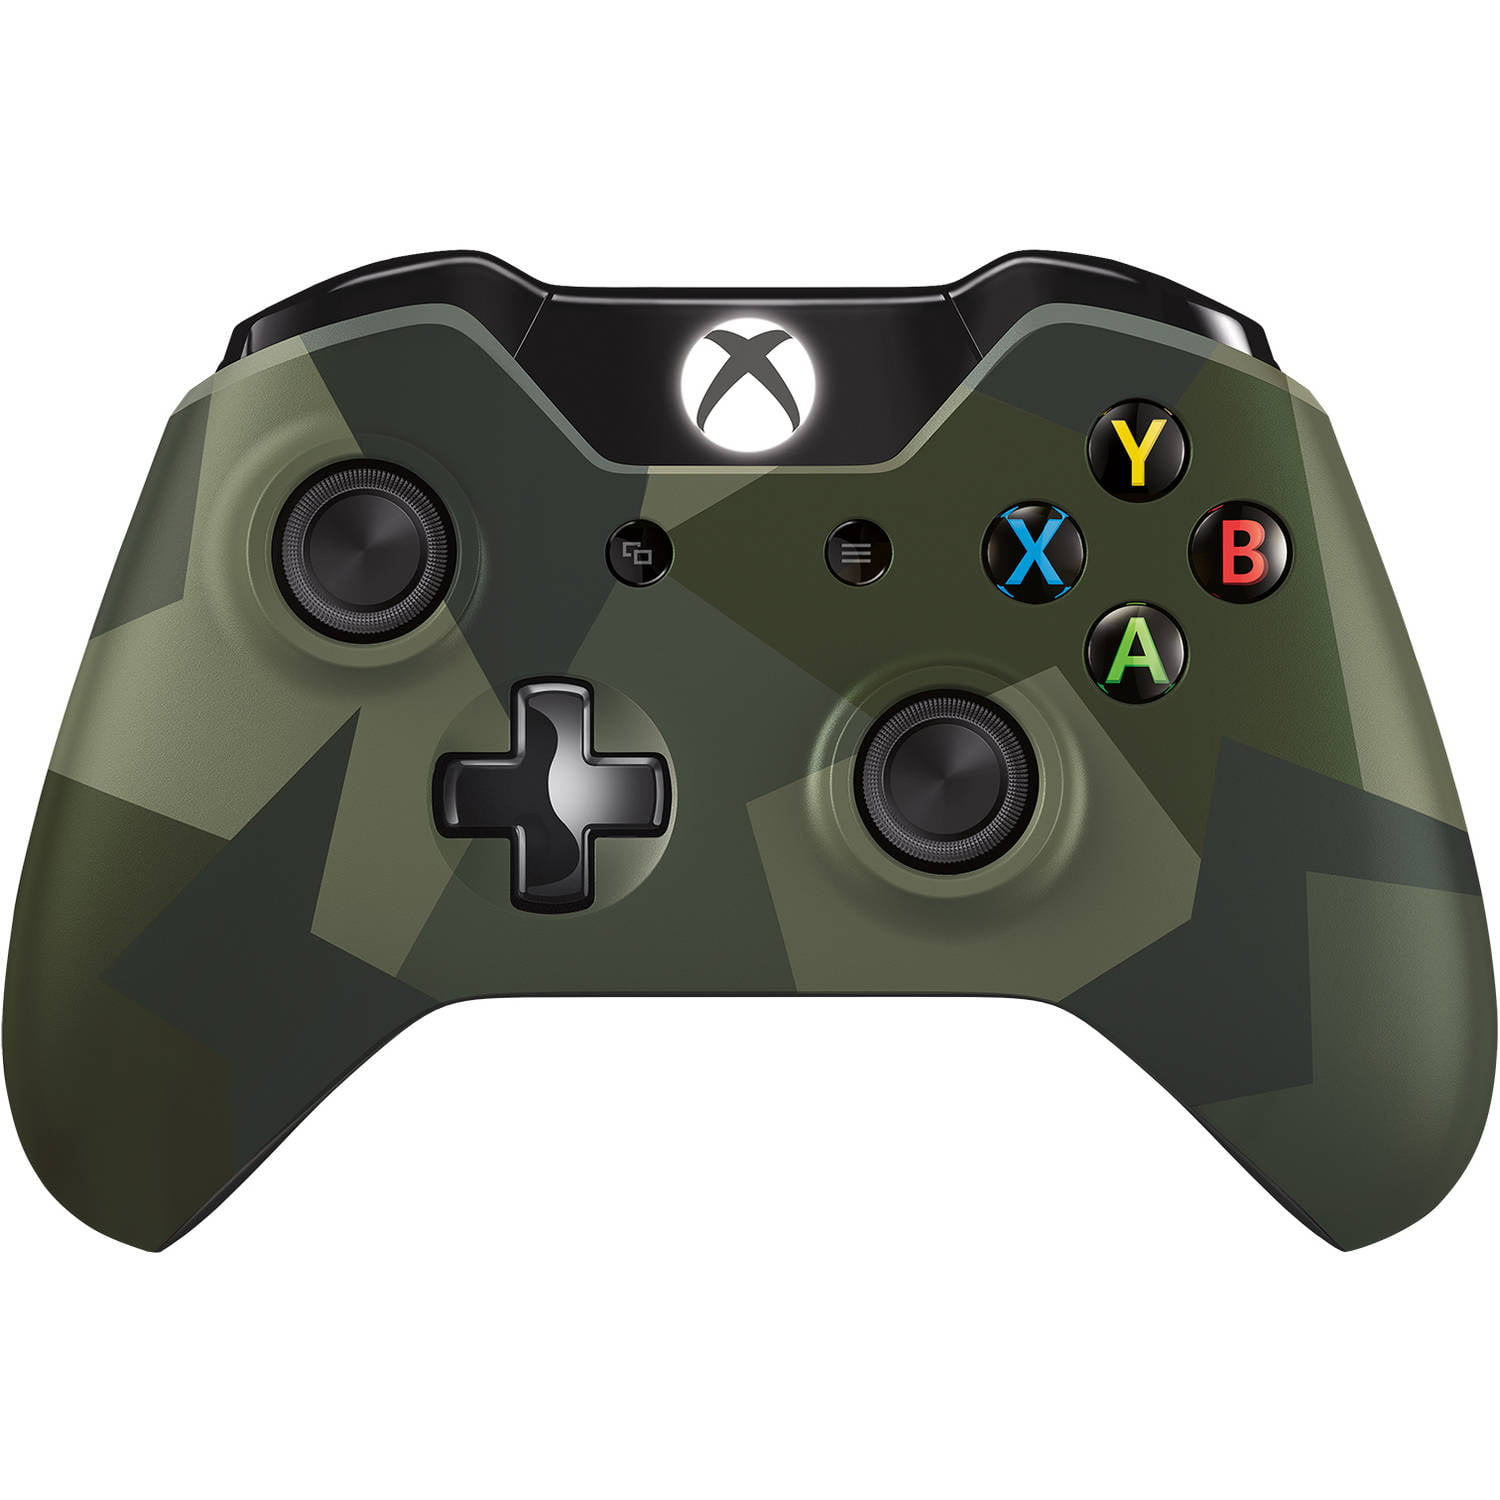 Xbox 360 Camo Wireless Controller White Wire Center Ef1206 12 Volt Led Dimmer Switch 5 Amps Max Rotary Onoff One Special Edition Armed Forces Walmart Rh Com Green